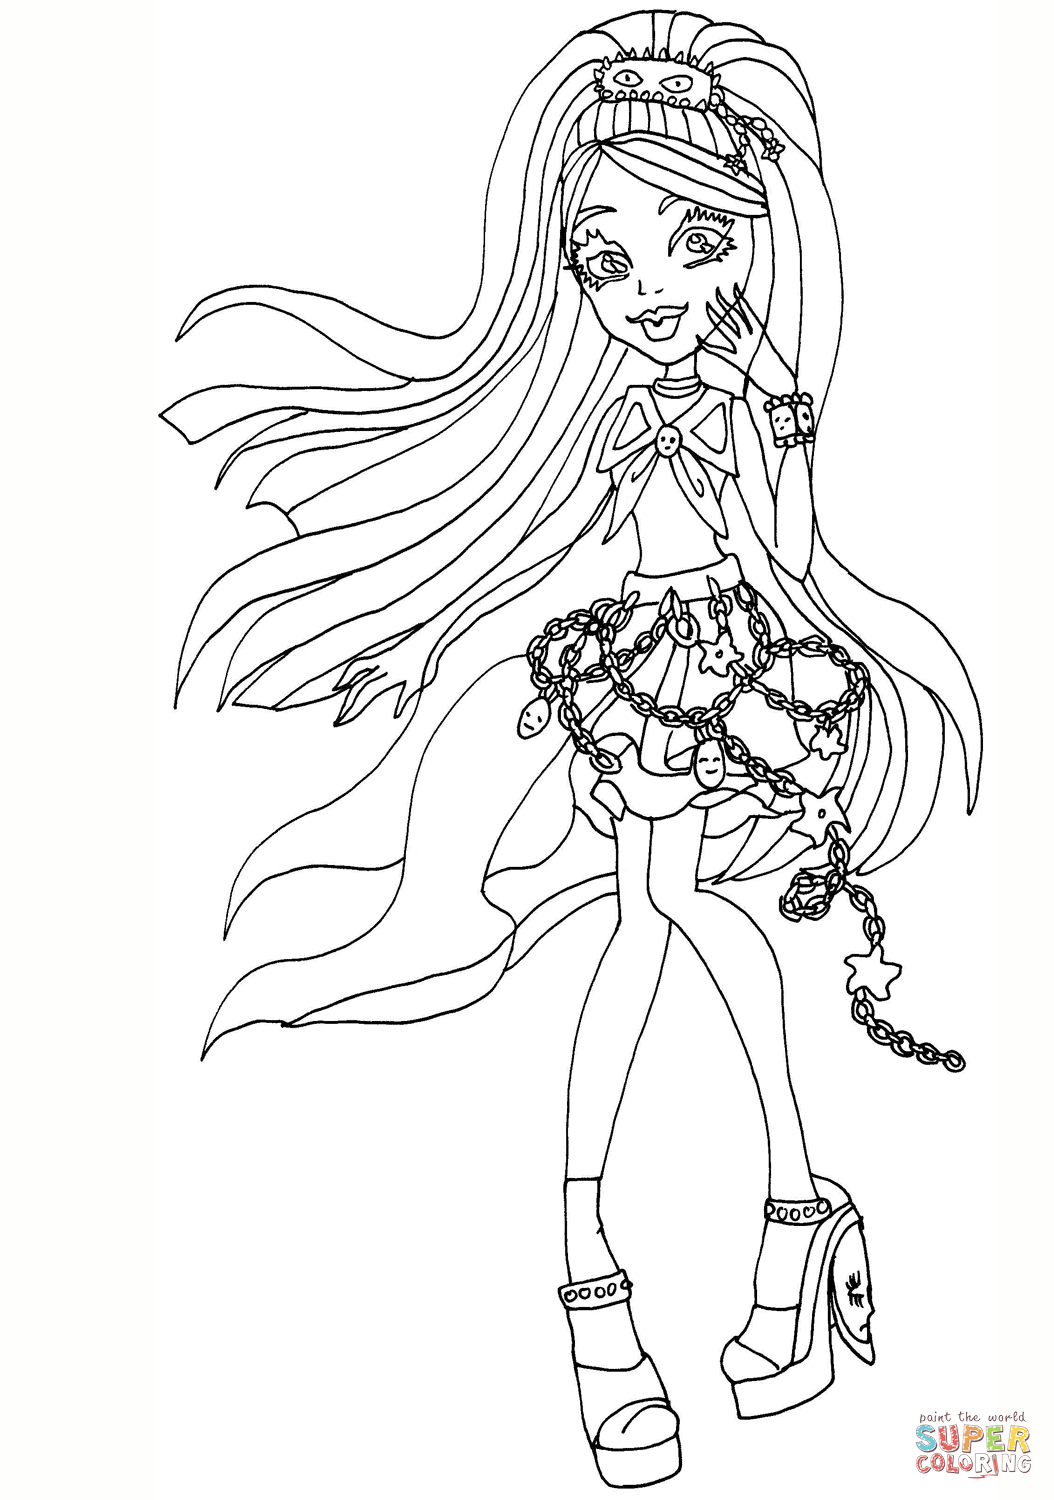 Monster High Meerjungfrau Ausmalbilder : Kiyomi Haunterly Coloring Page Png 1054 1500 Monster High